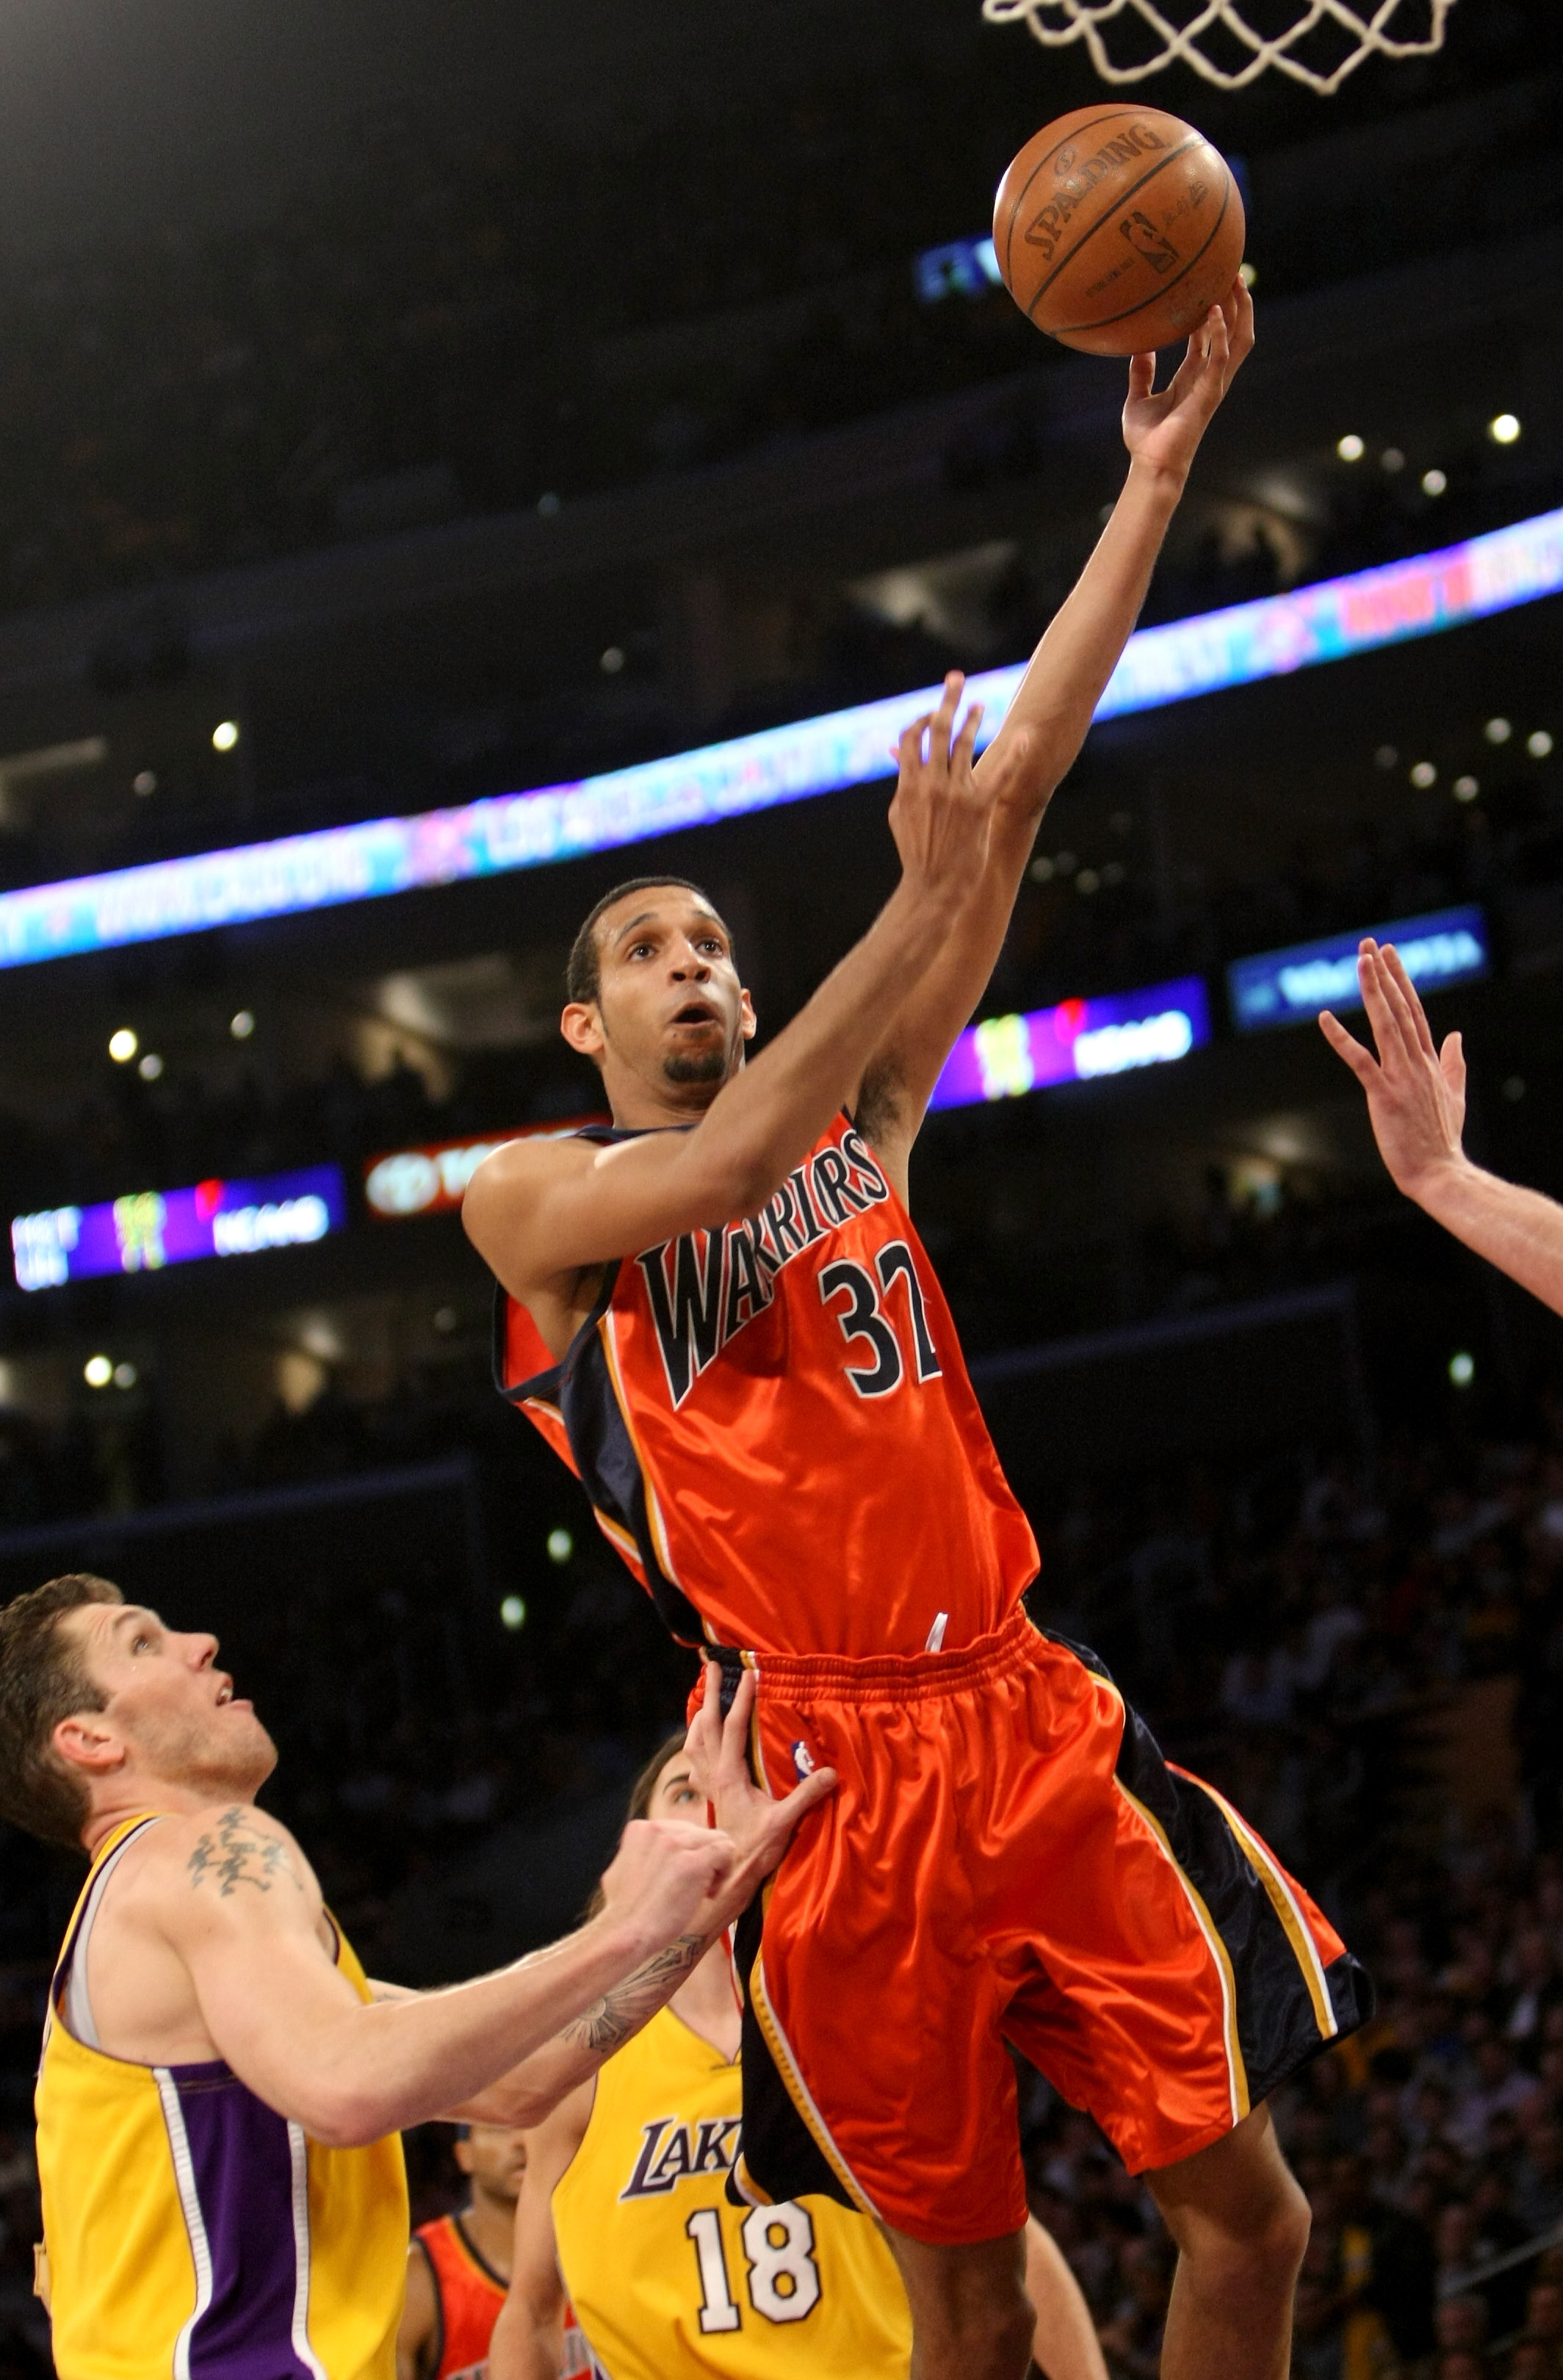 Brandan Wright was a one-and-done coming out of North Carolina.